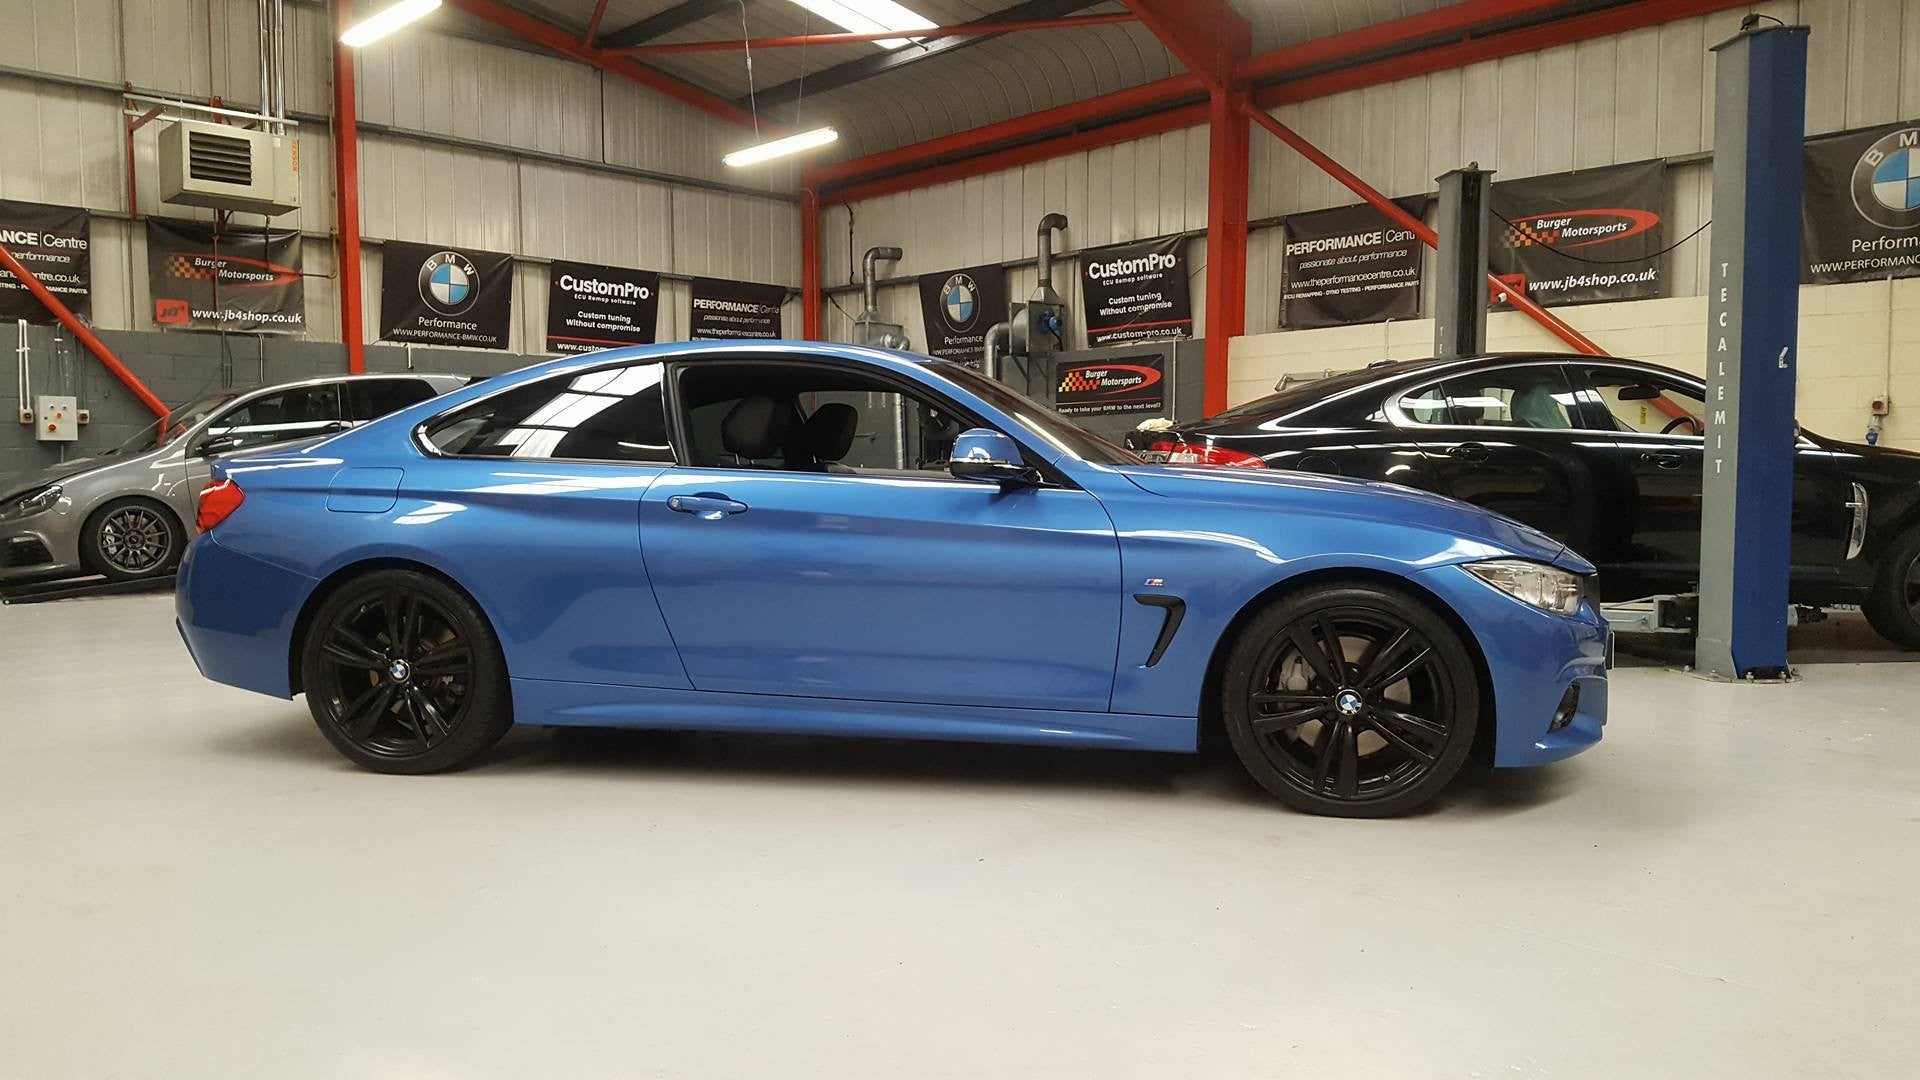 BMW 435d X-Drive - Eibach lowering springs